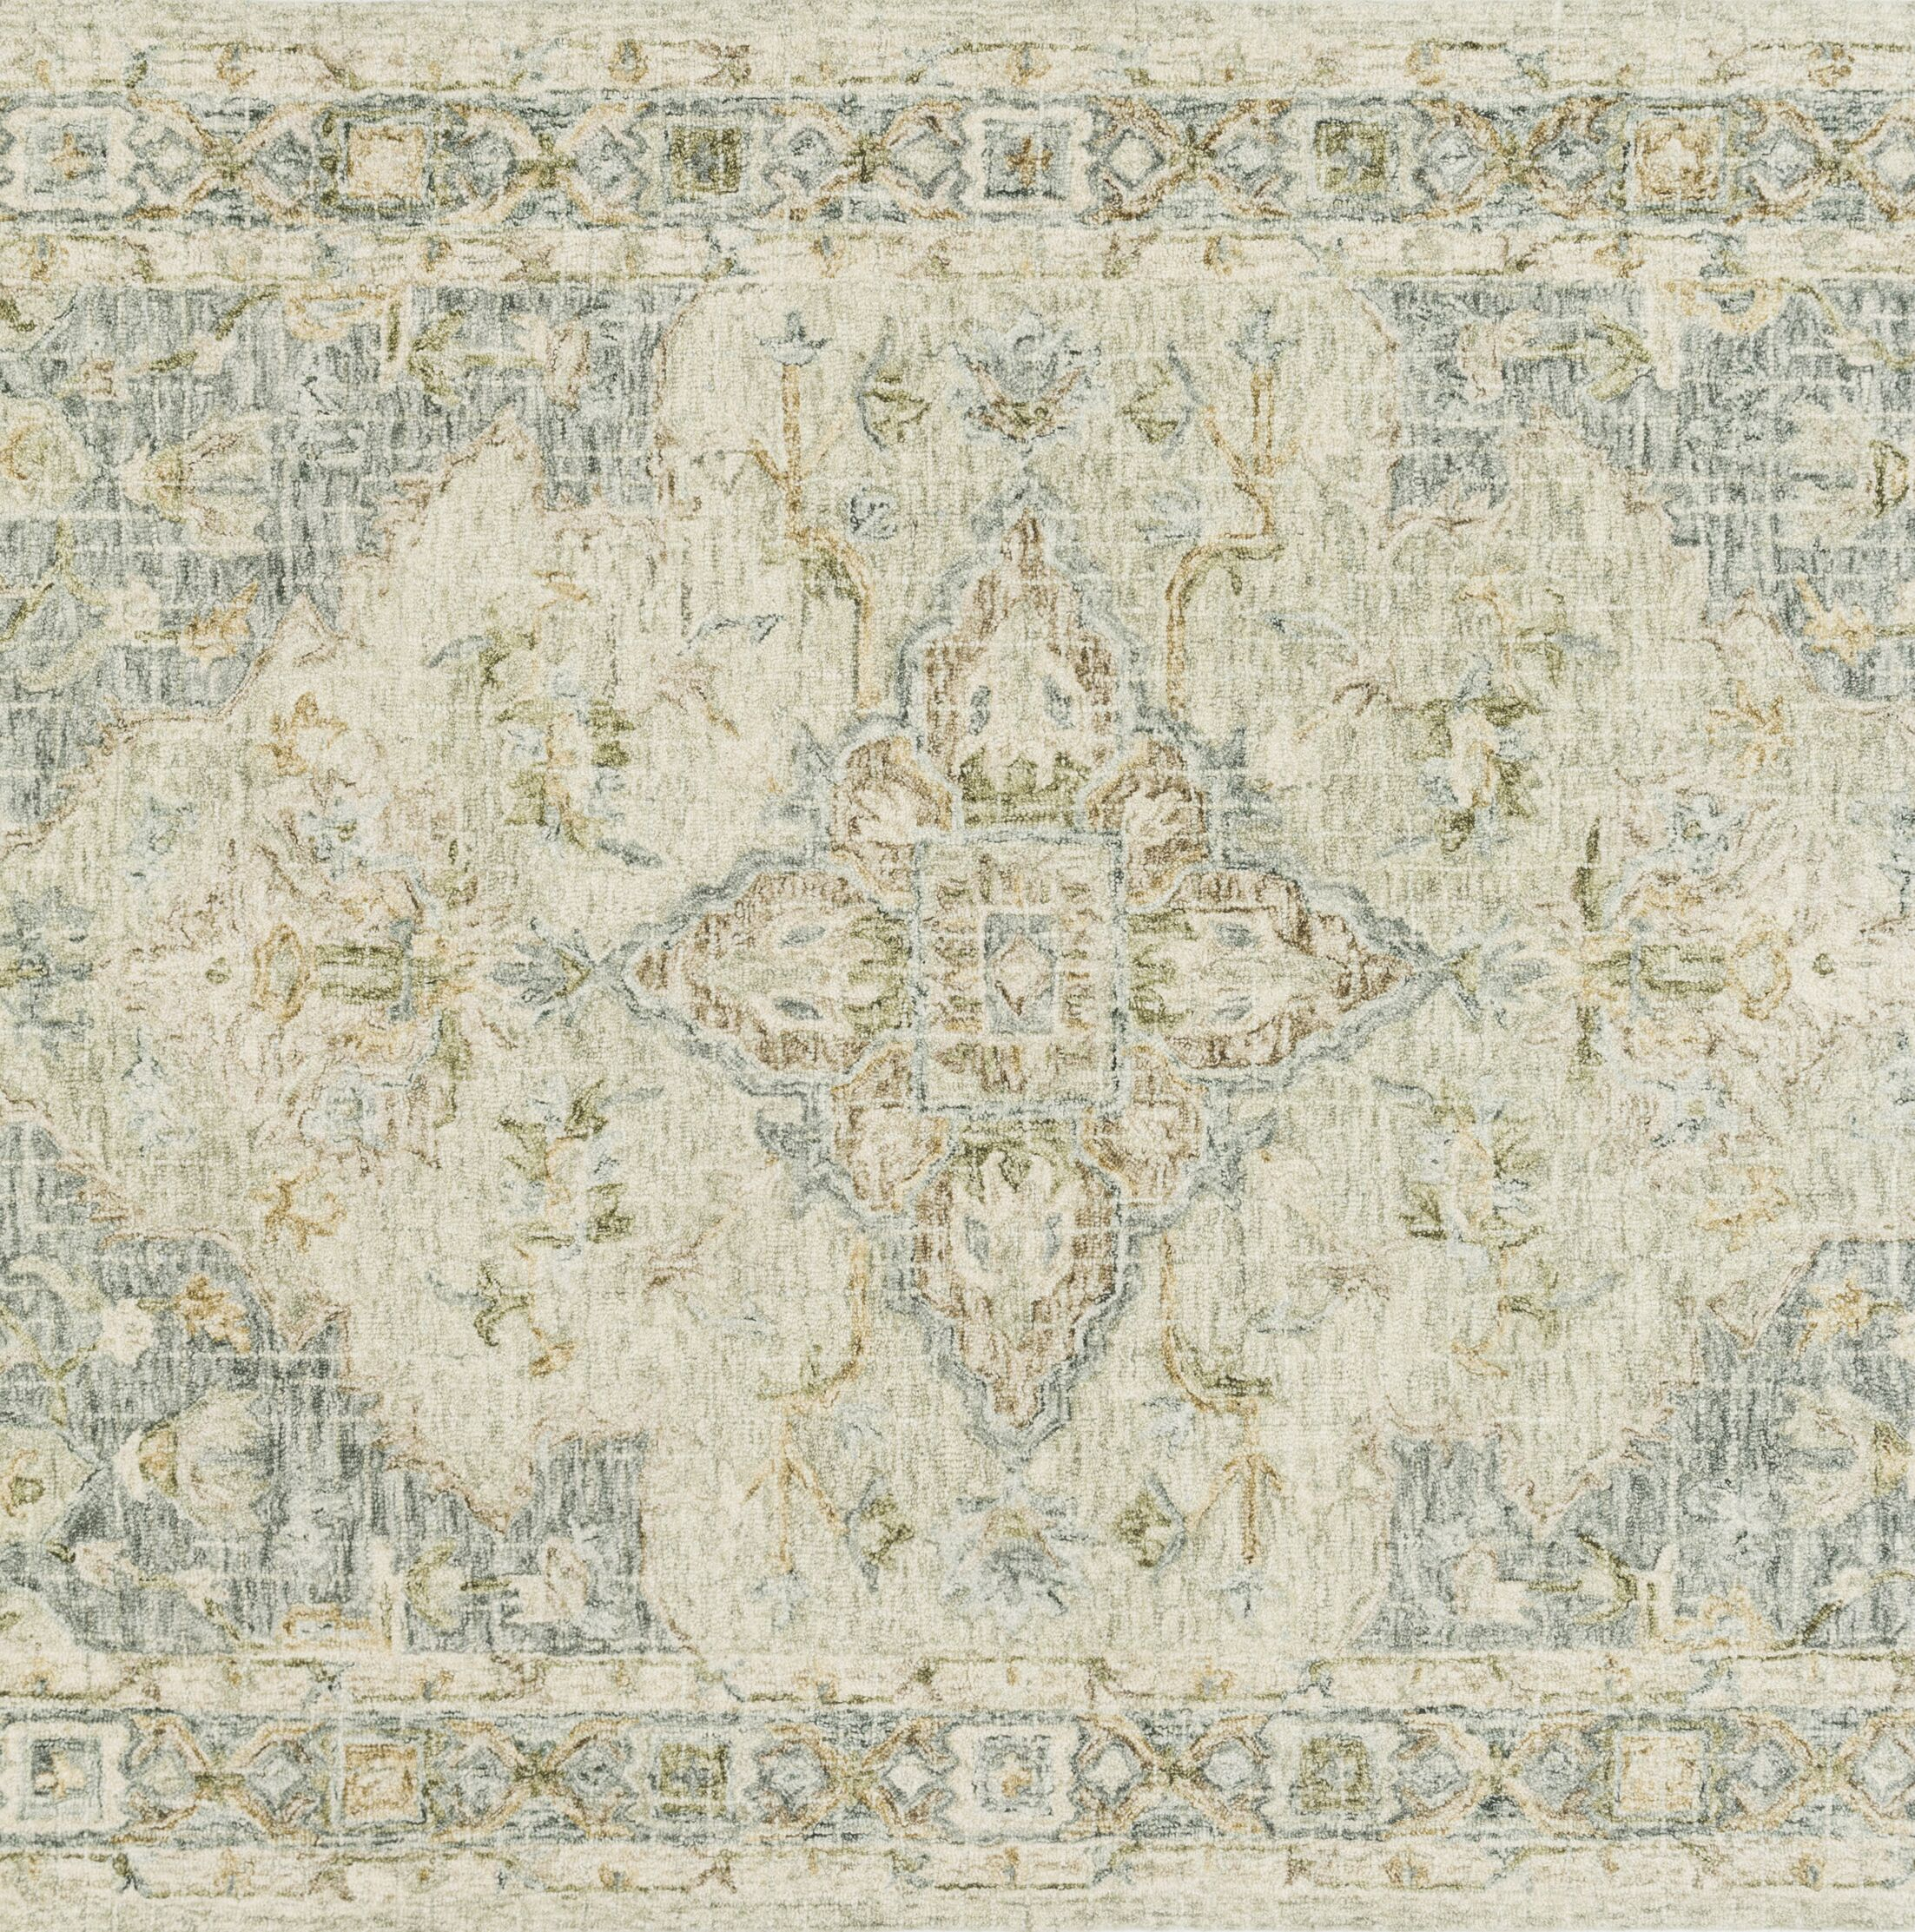 Fitzwater Hand-Hooked Wool Seafoam Green/Spa Area Rug Rug Size: Rectangle 2'6